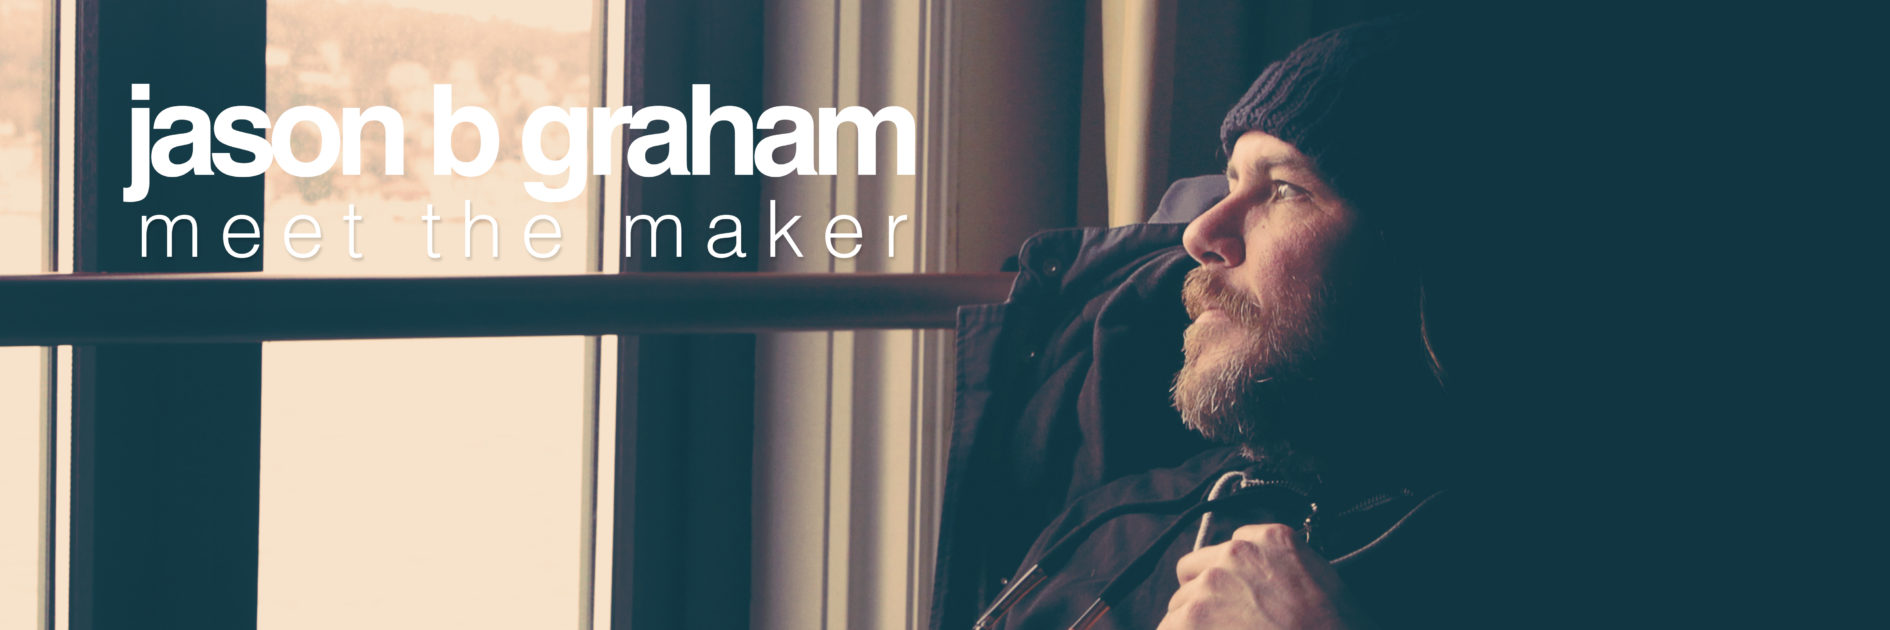 meet-the-maker-jason-b-graham